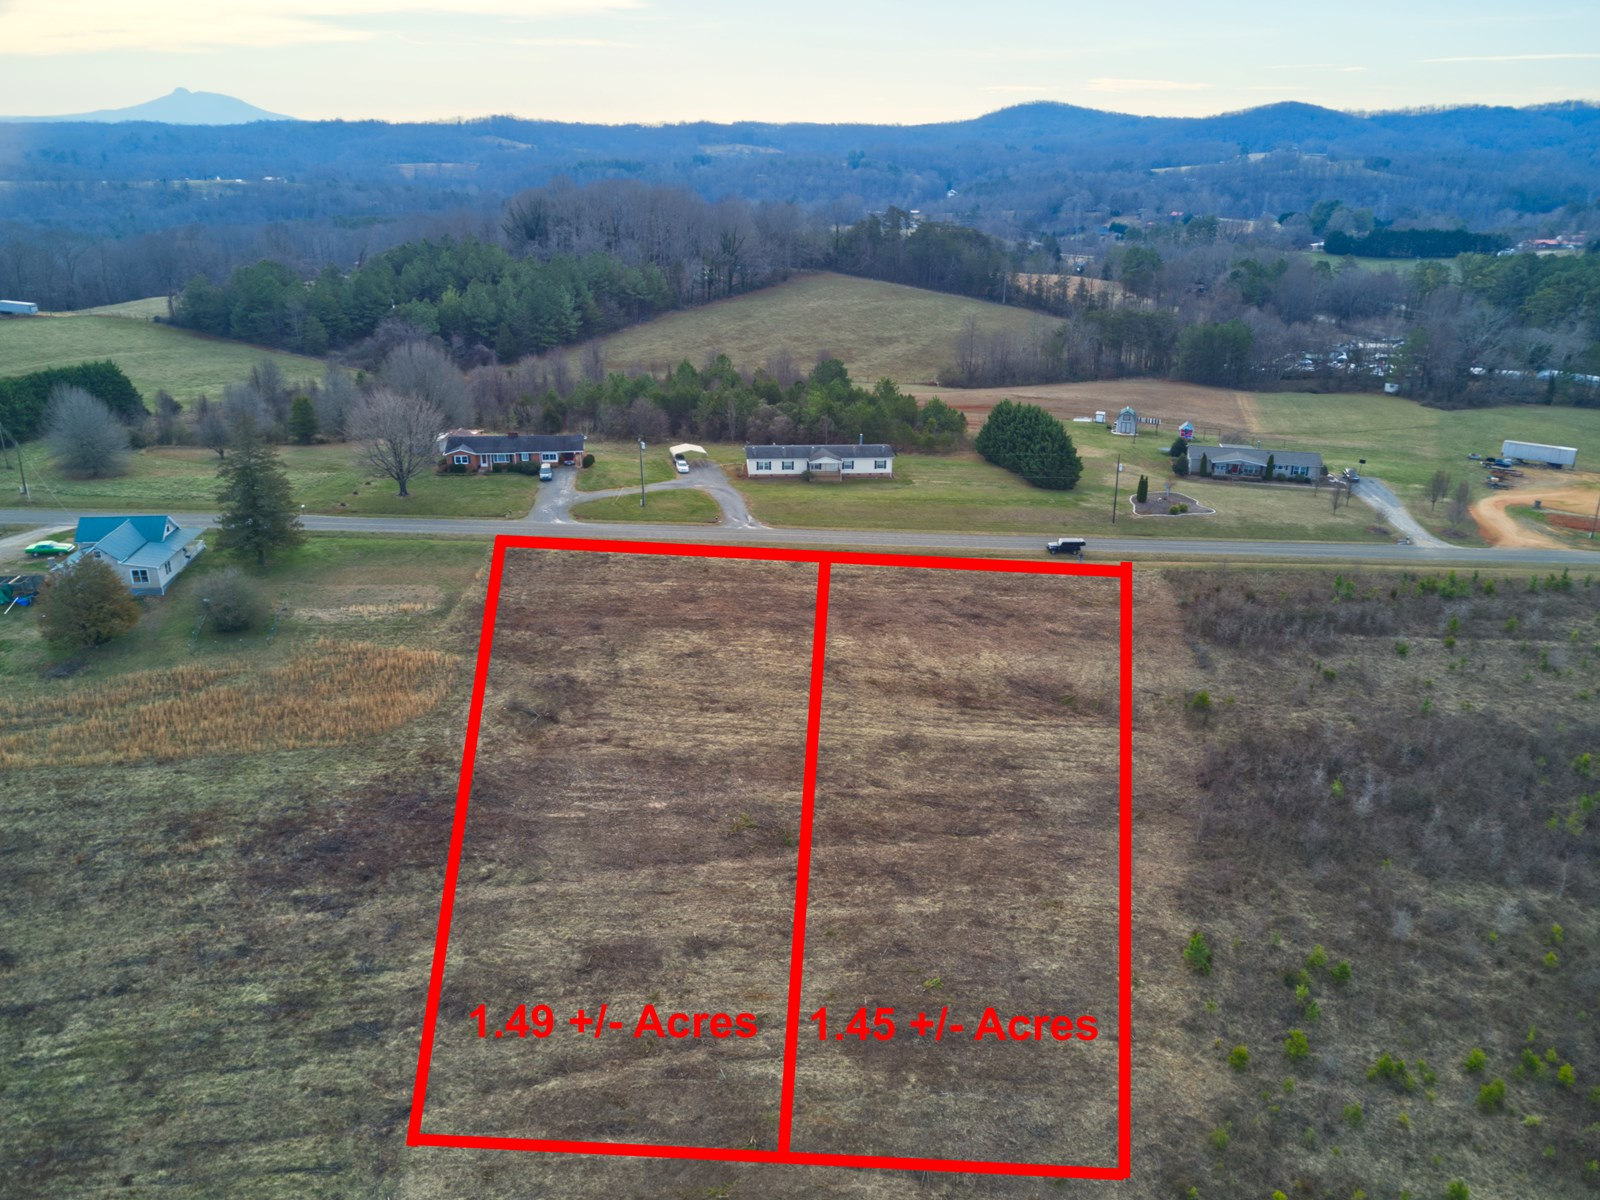 Building Lot For sale in Mount Airy NC